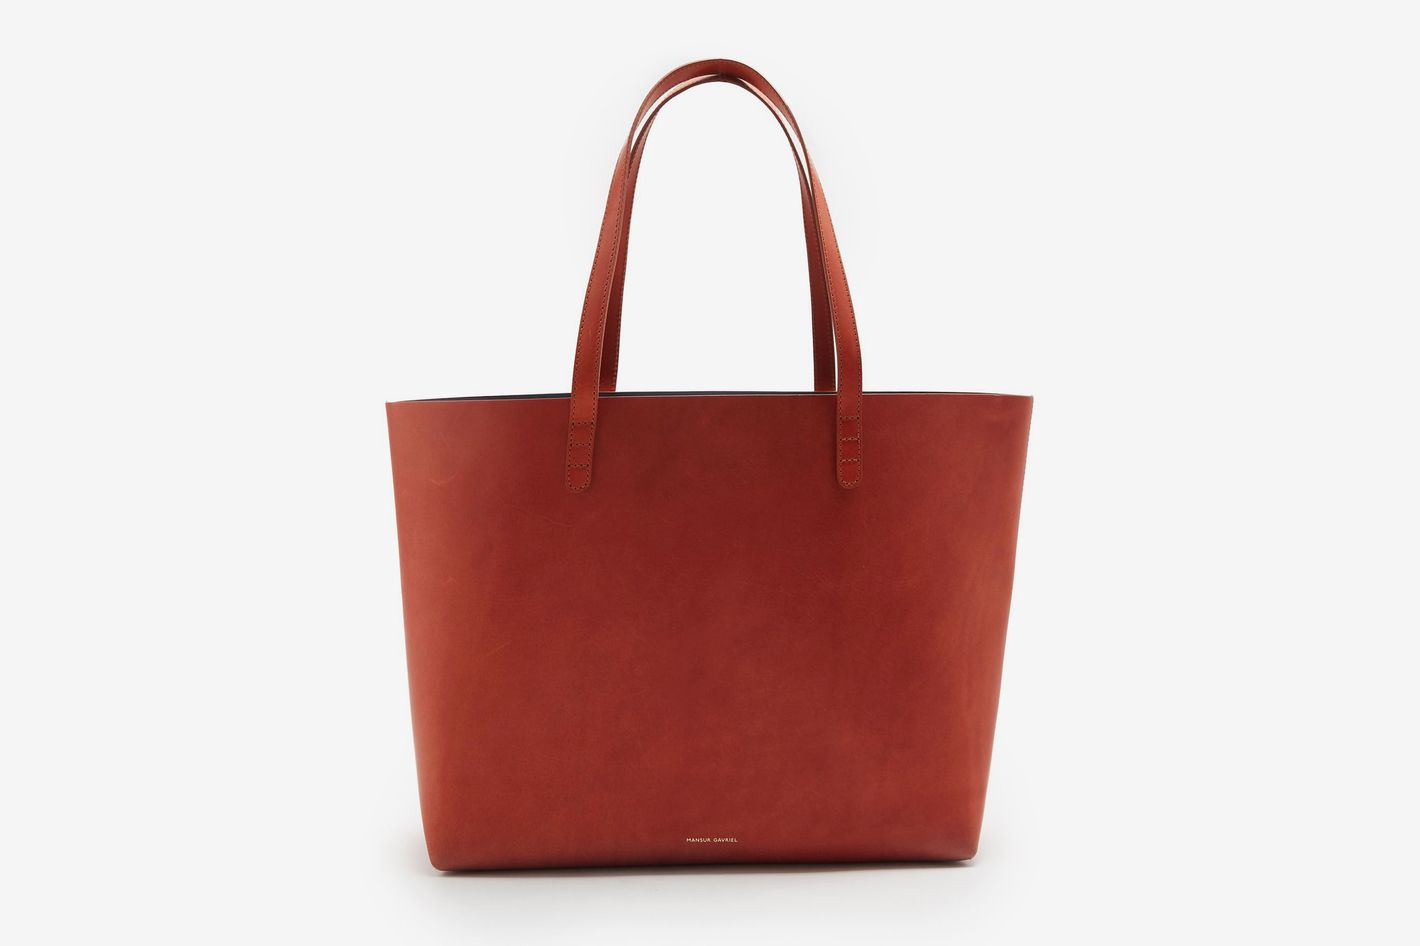 Mansur Gavriel Red-Lined Large Leather Tote Bag